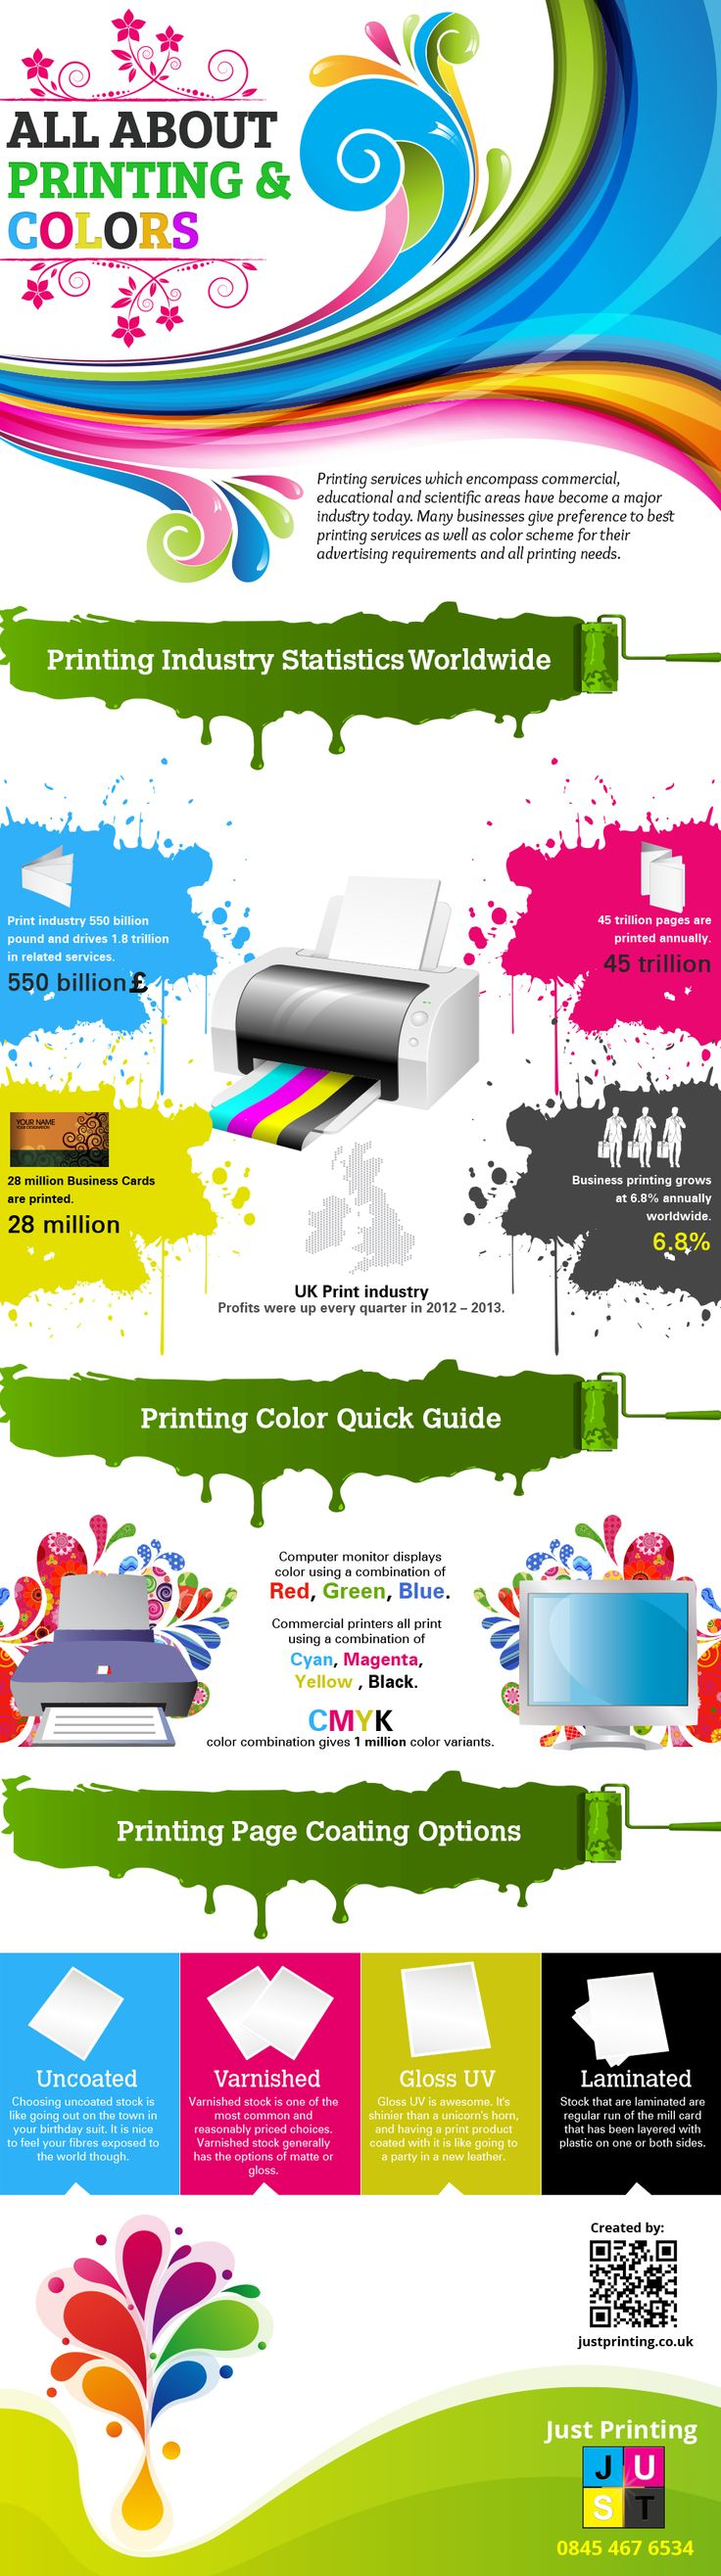 10 best Digital Printing images on Pinterest